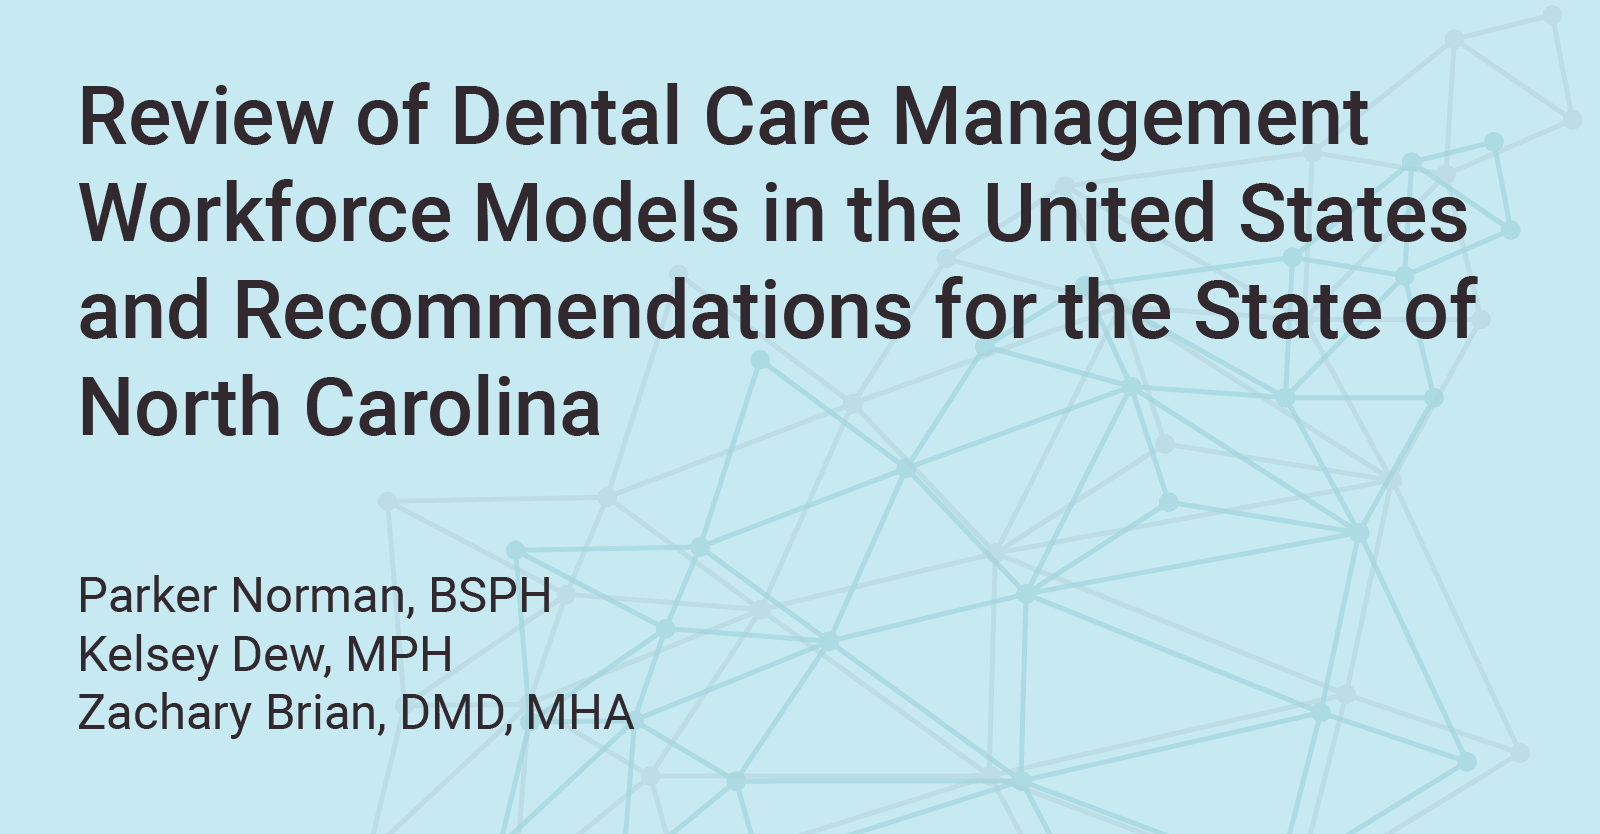 Review of Dental Care Management Workforce Models in the United States and Recommendations for the State of North Carolina